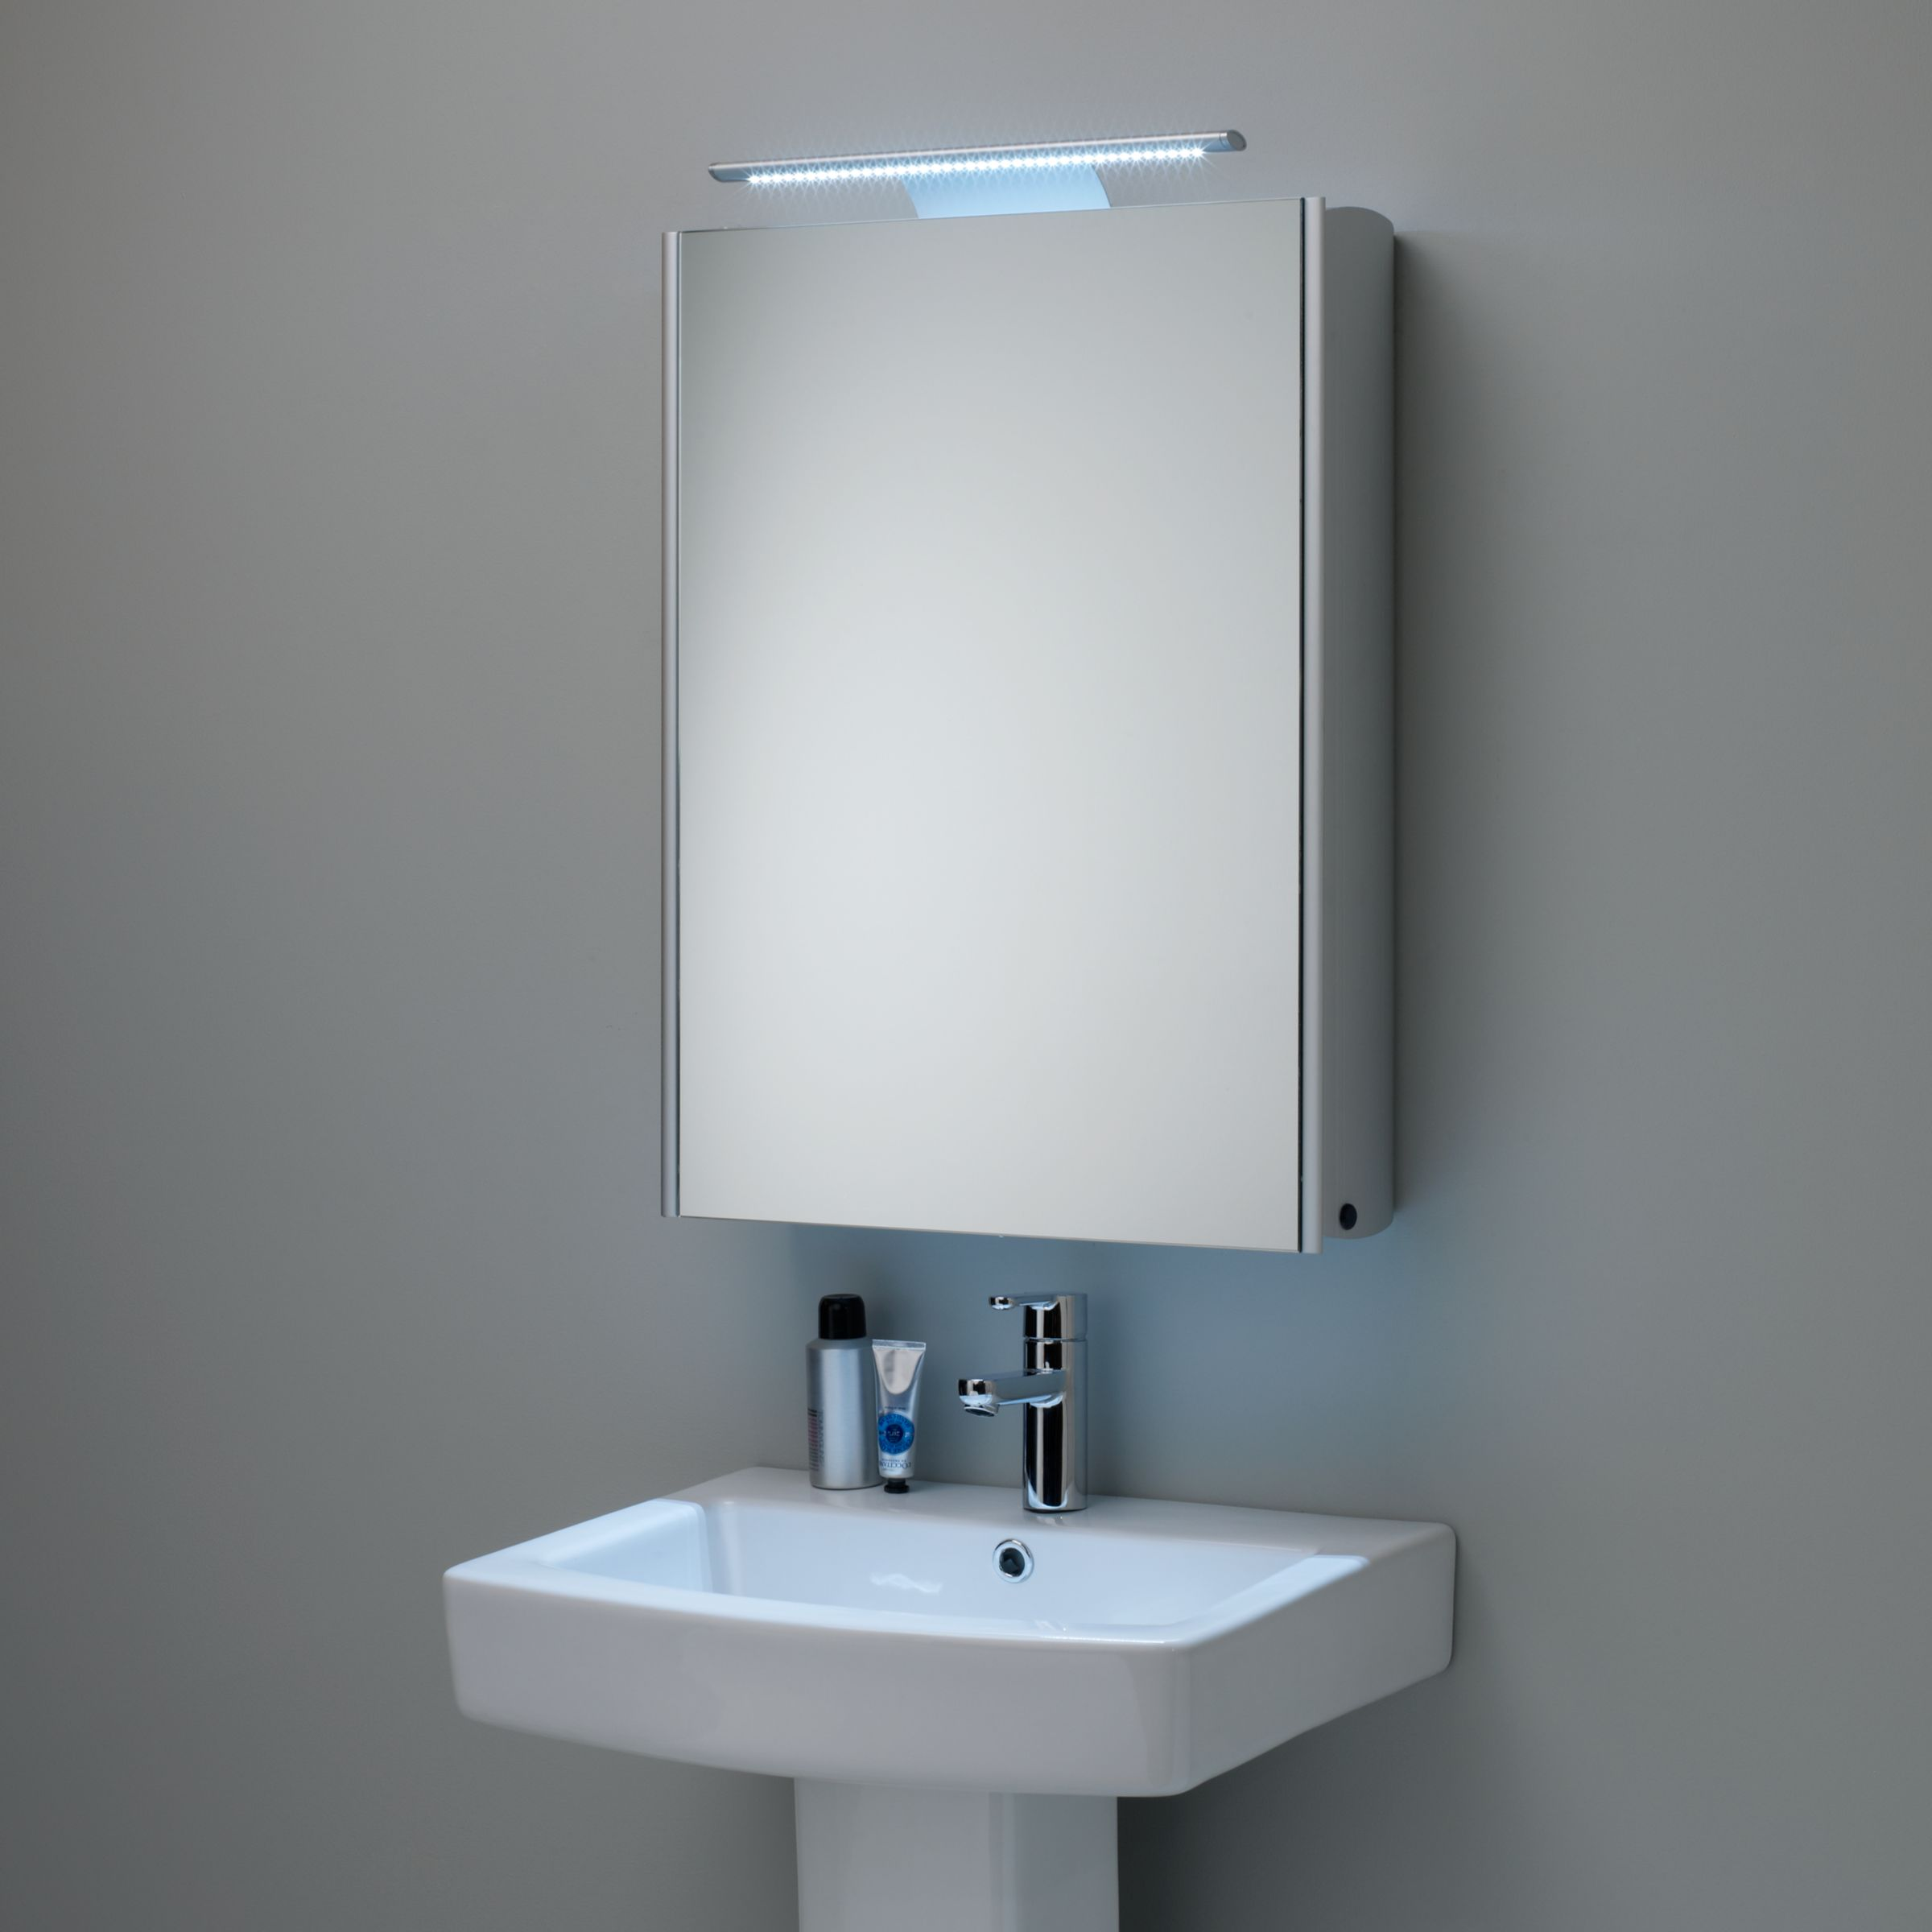 Buy Roper Rhodes Equinox Illuminated Single Mirrored Bathroom Cabinet With Double-Sided Mirror